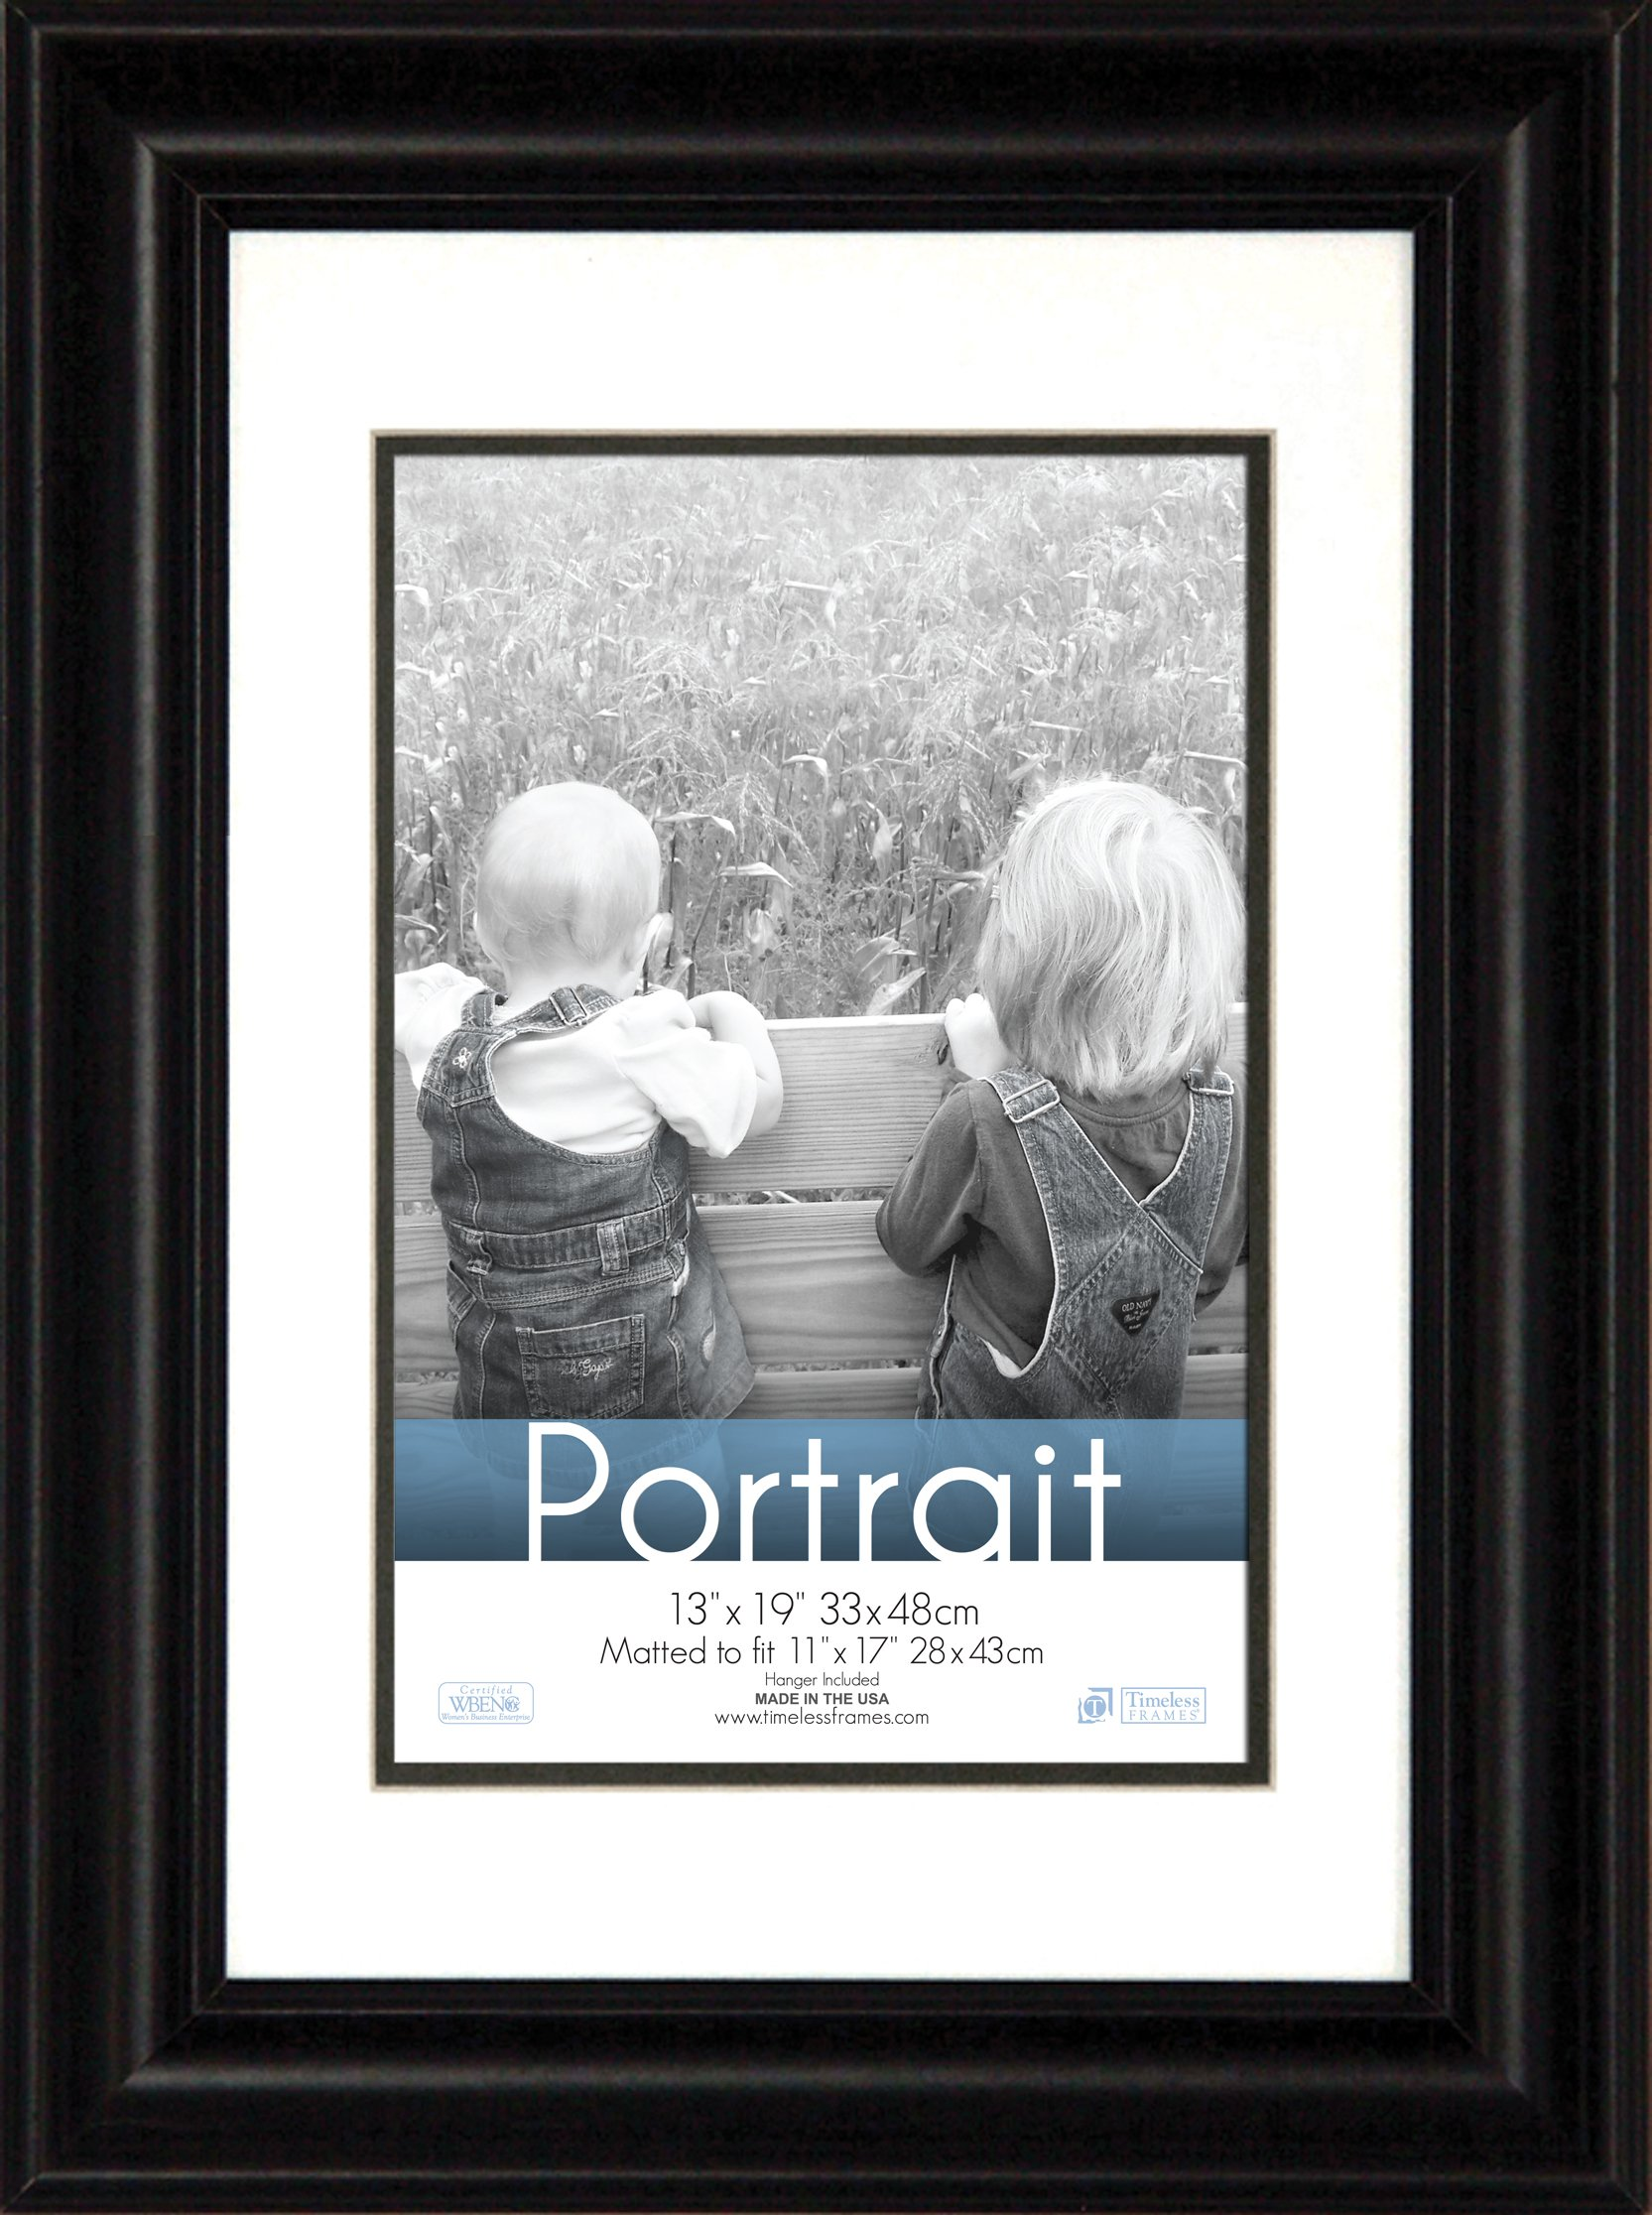 Timeless Frames 13x19 Inch Fits 11x17 Inch Photo Lauren Portrait Wall Frame, Black by Timeless Expressions